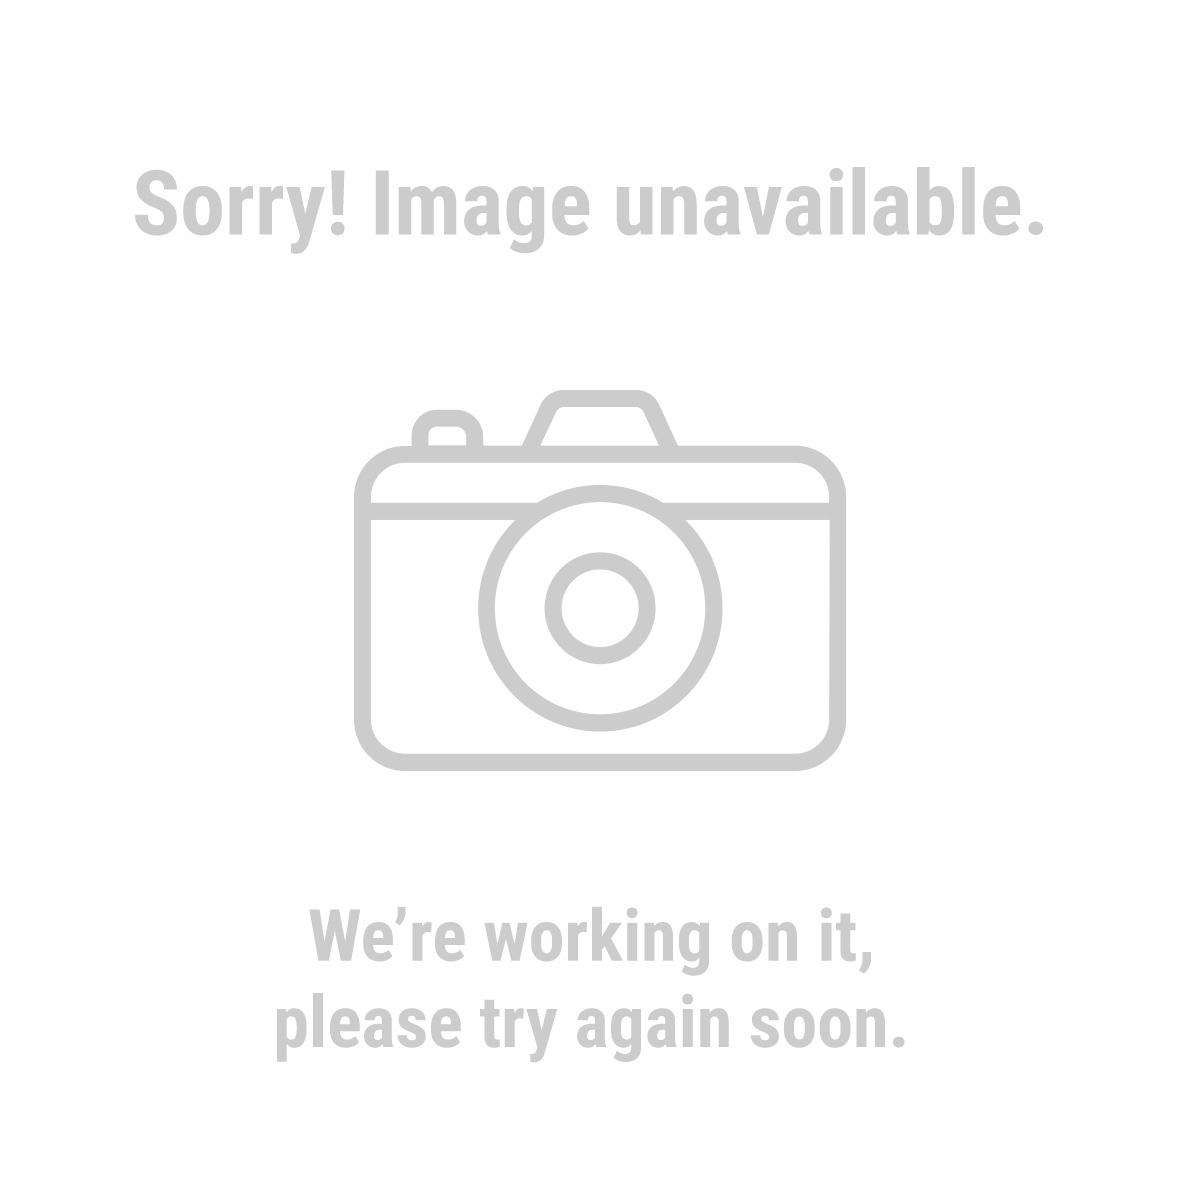 HFT 62389 Anti-Fatigue Foam Mat Set 4 Pc